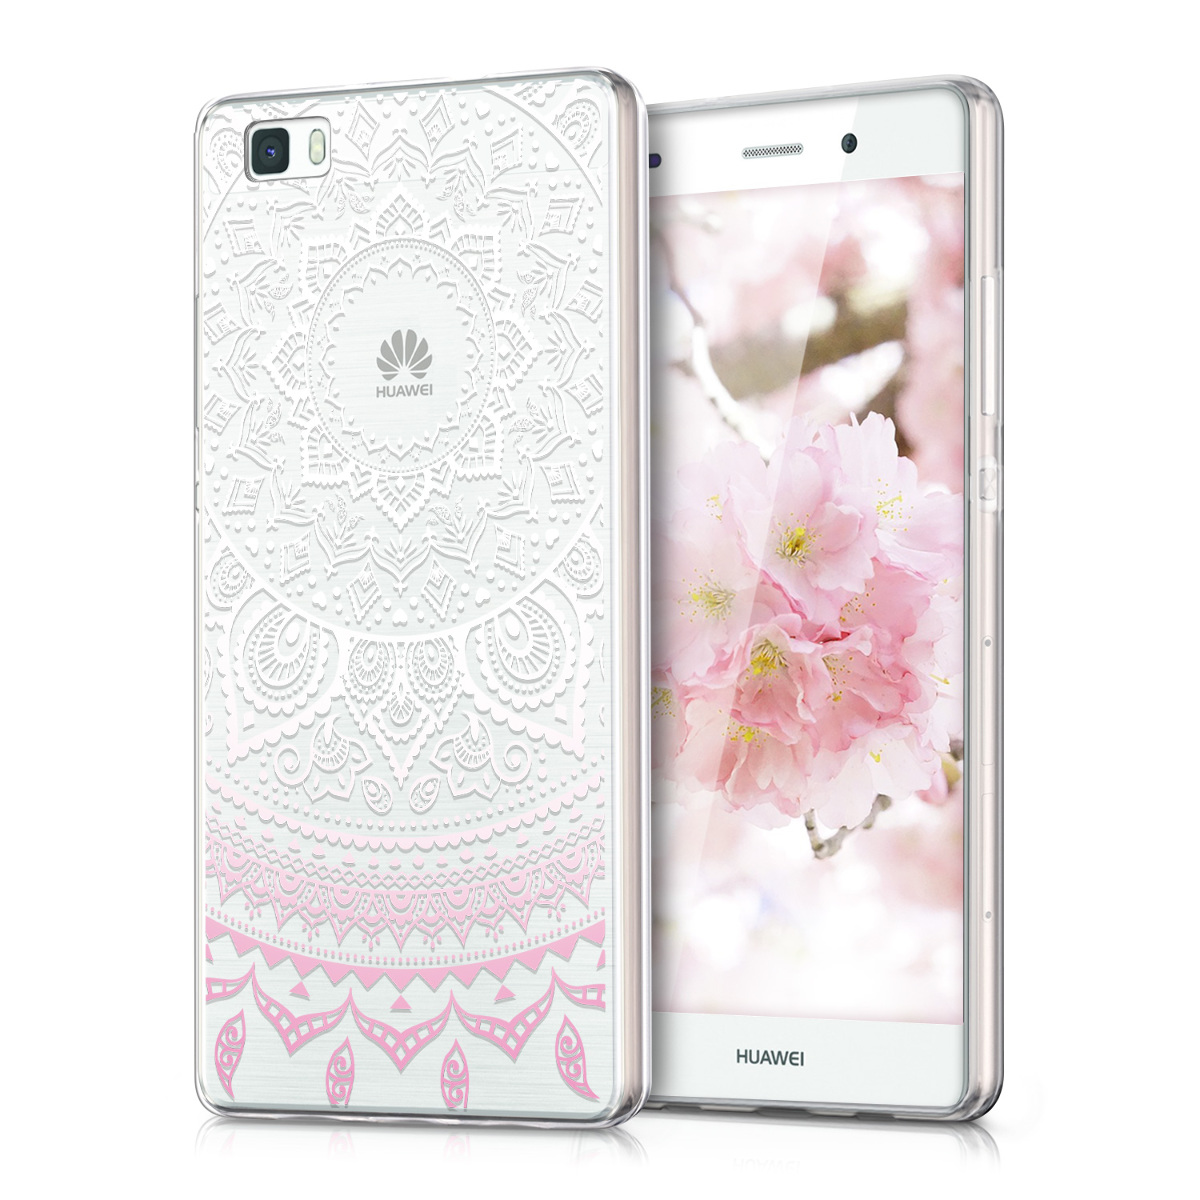 kwmobile TPU SILICONE CRYSTAL CASE FOR HUAWEI P8 LITE SOFT COVER BUMPER SILICON